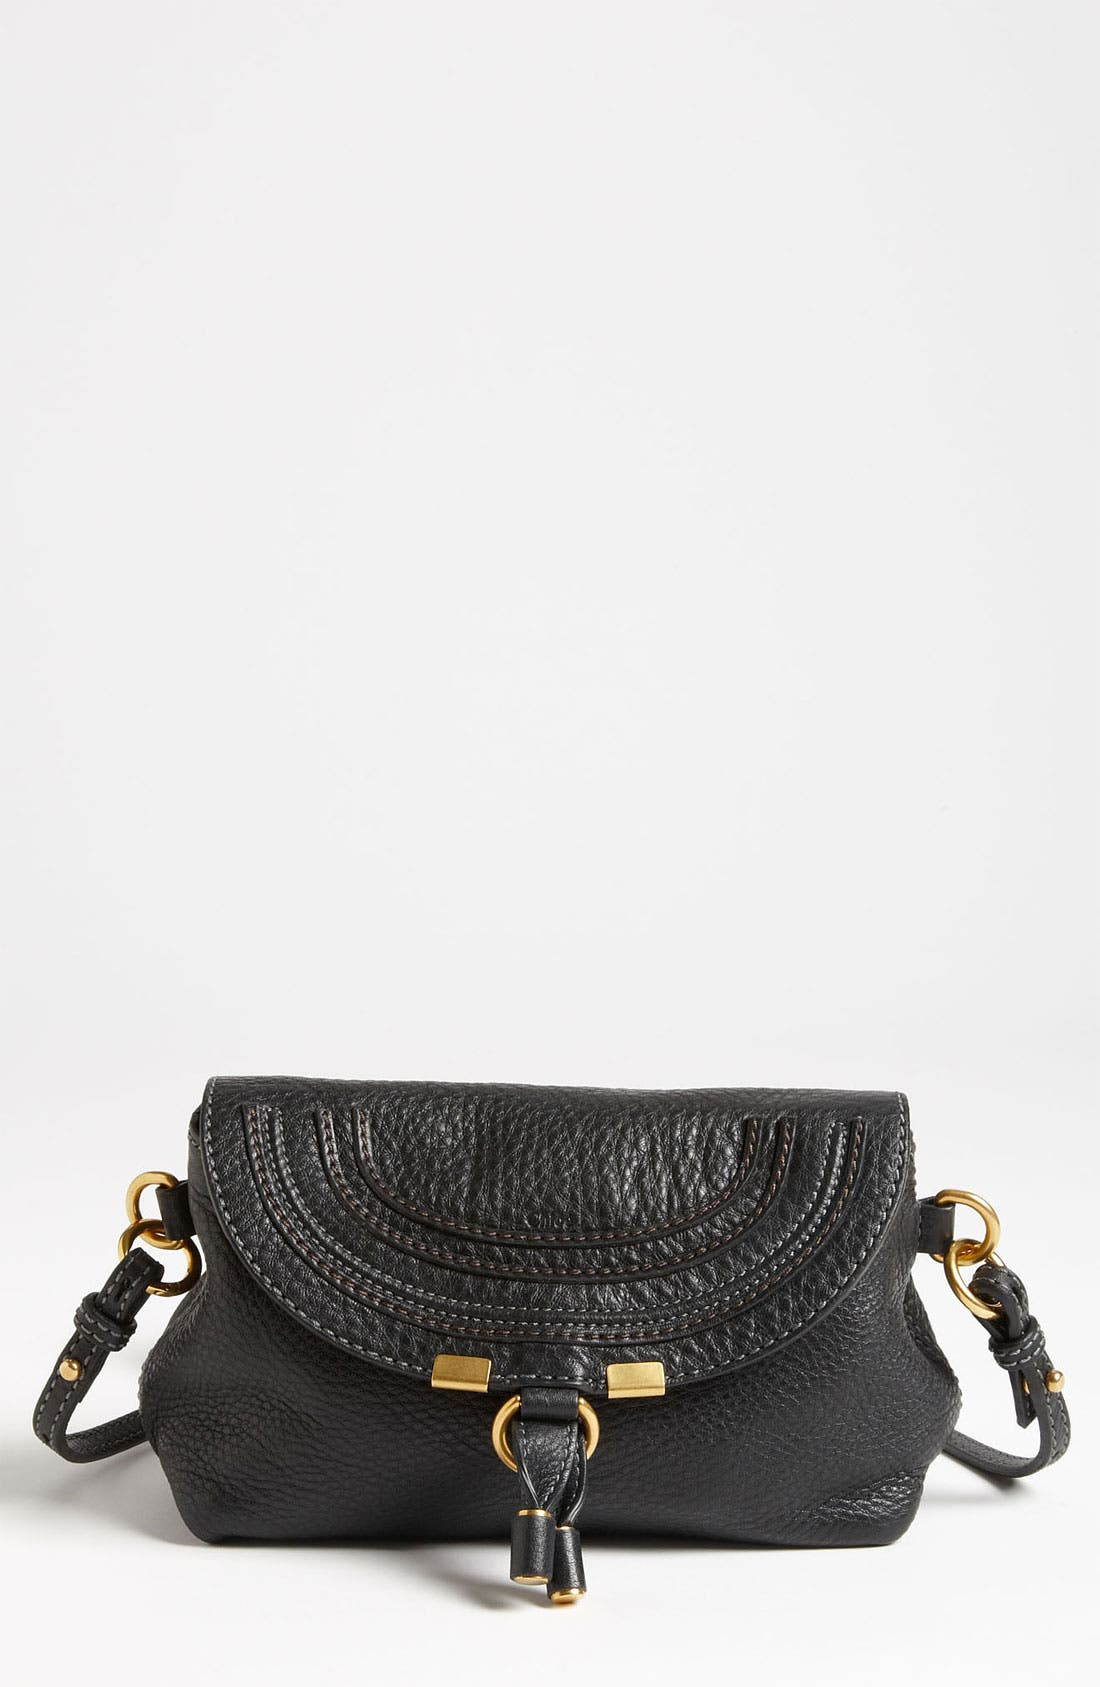 Alternate Image 1 Selected - Chloé 'Marcie' Calfskin Leather Crossbody Bag